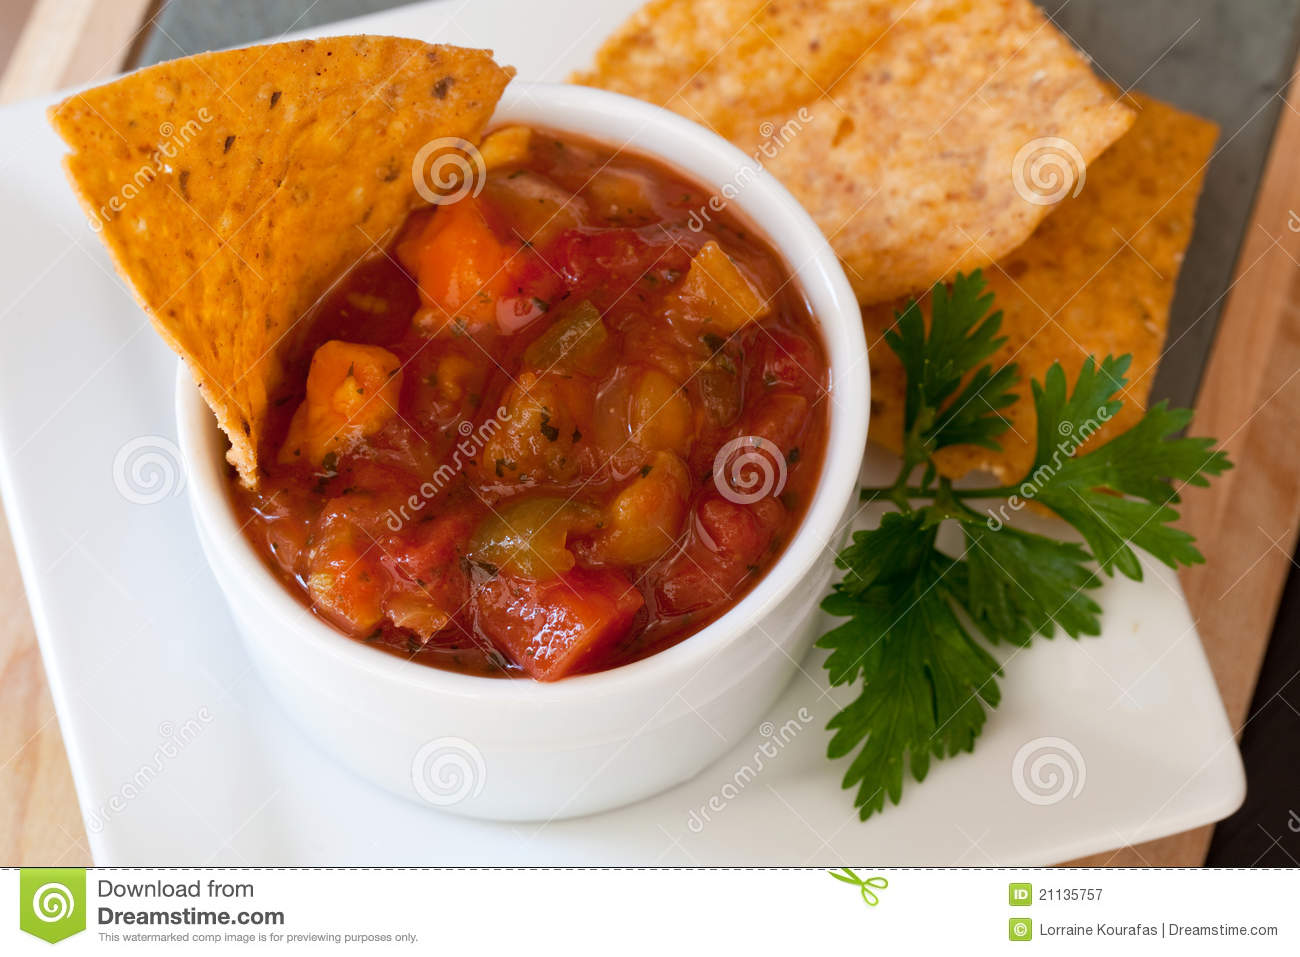 Peach Mango Salsa And Chipotle Chips Royalty Free Stock Photography ...